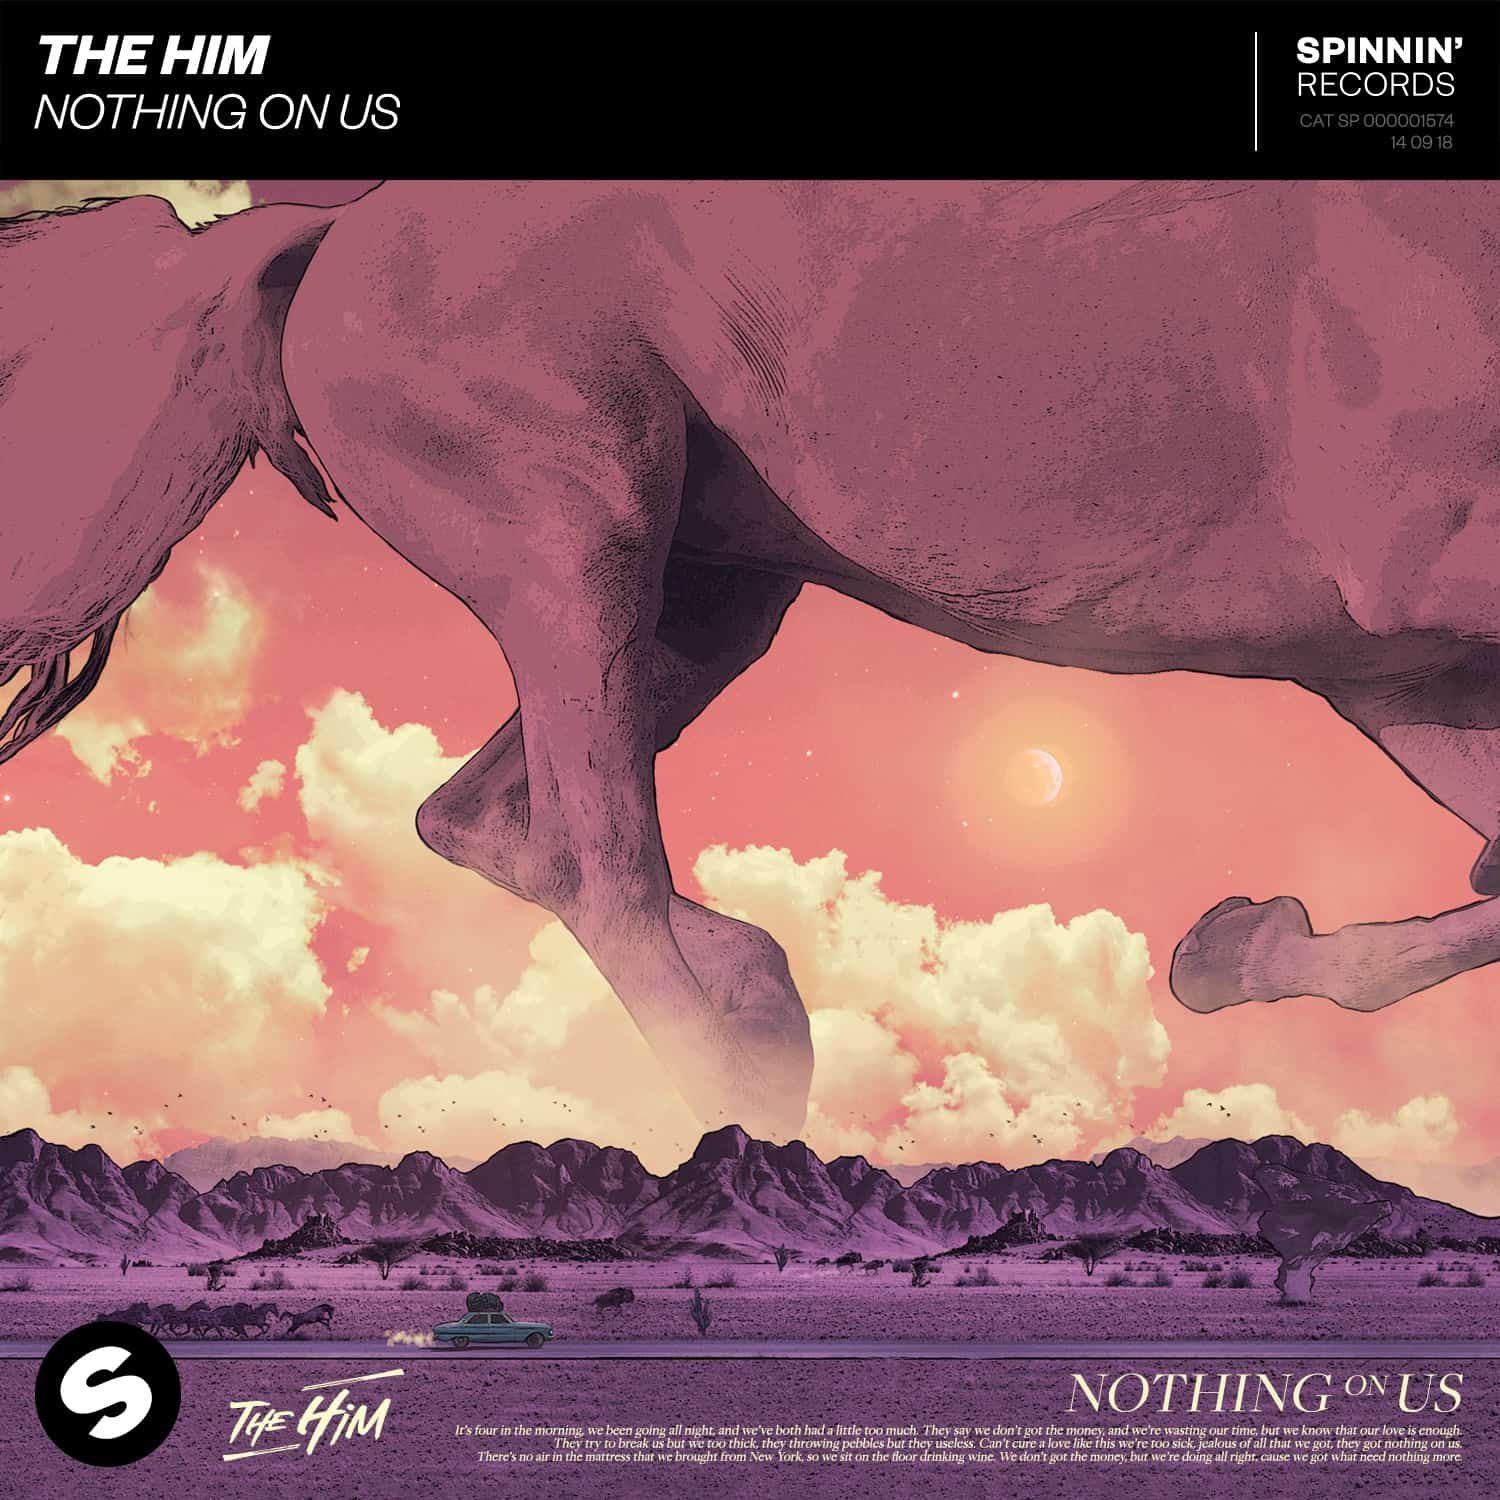 The Him presents heartfelt 'Nothing On Us'